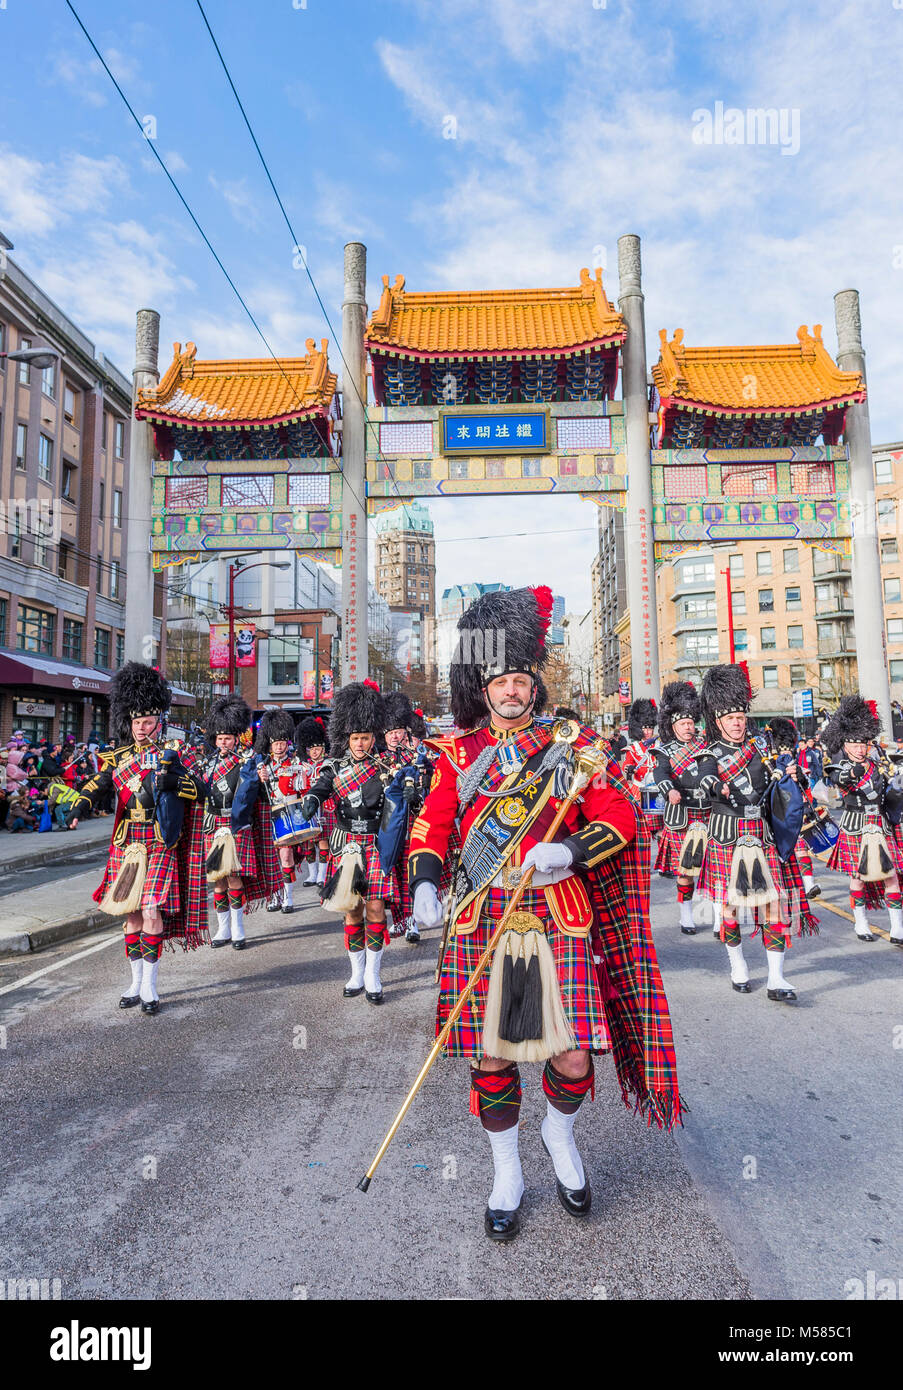 Vancouver Police Pipe Band, Chinese Lunar New Year Parade, Chinatown, Vancouver, British Columbia, Canada. - Stock Image